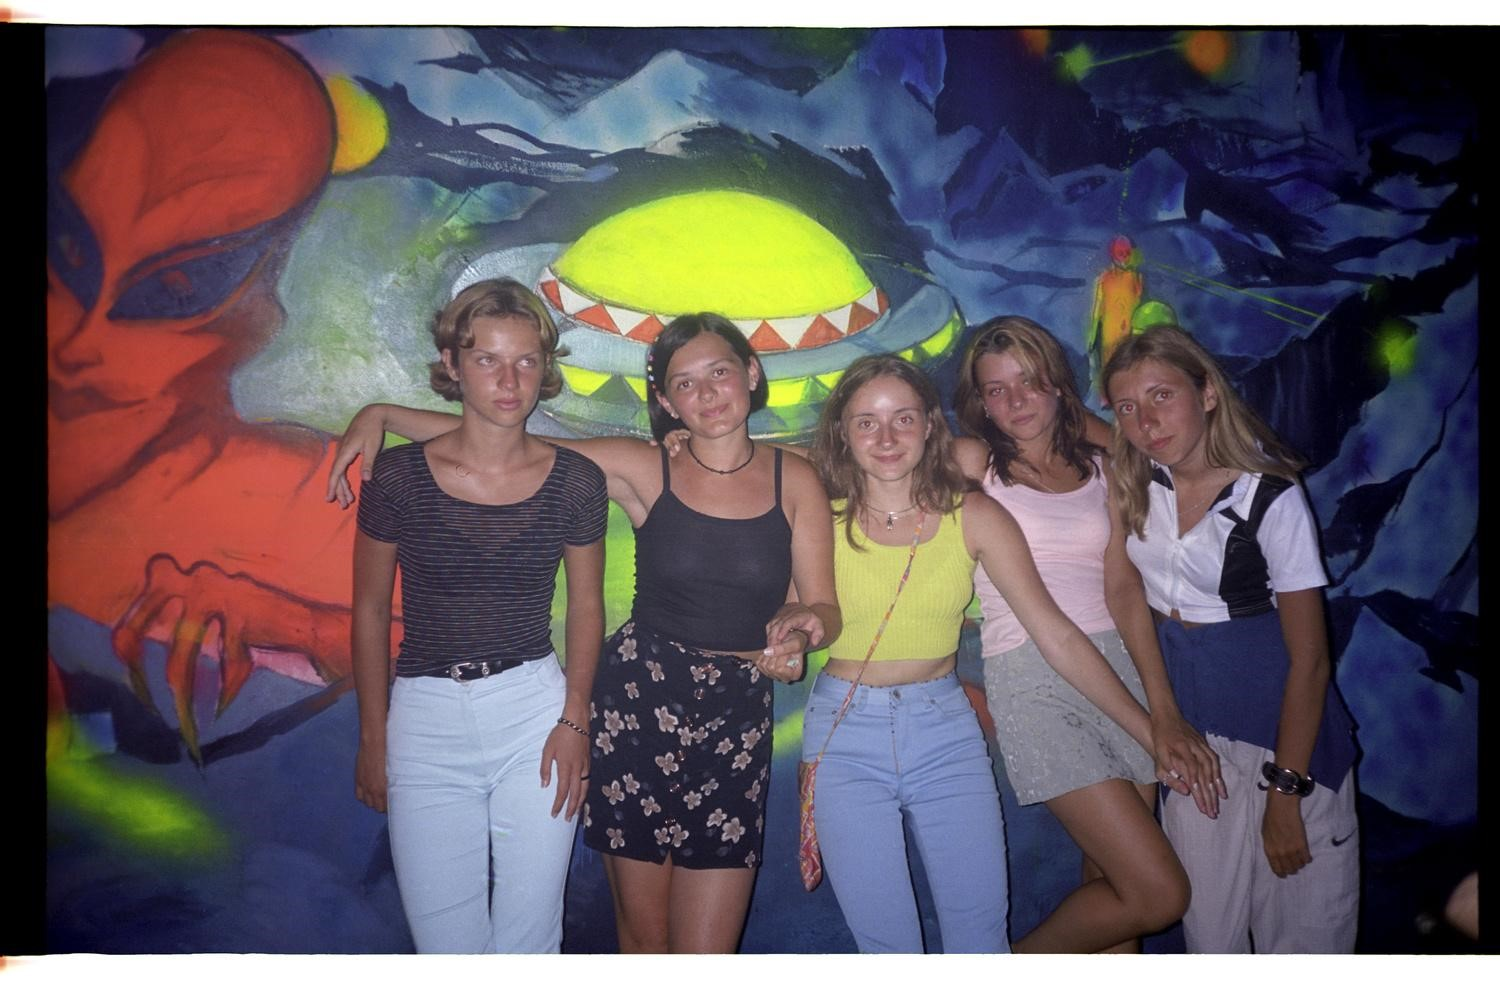 My friends and I (in the middle) at the Horizont Night Club Obzor, Bulgaria 1999